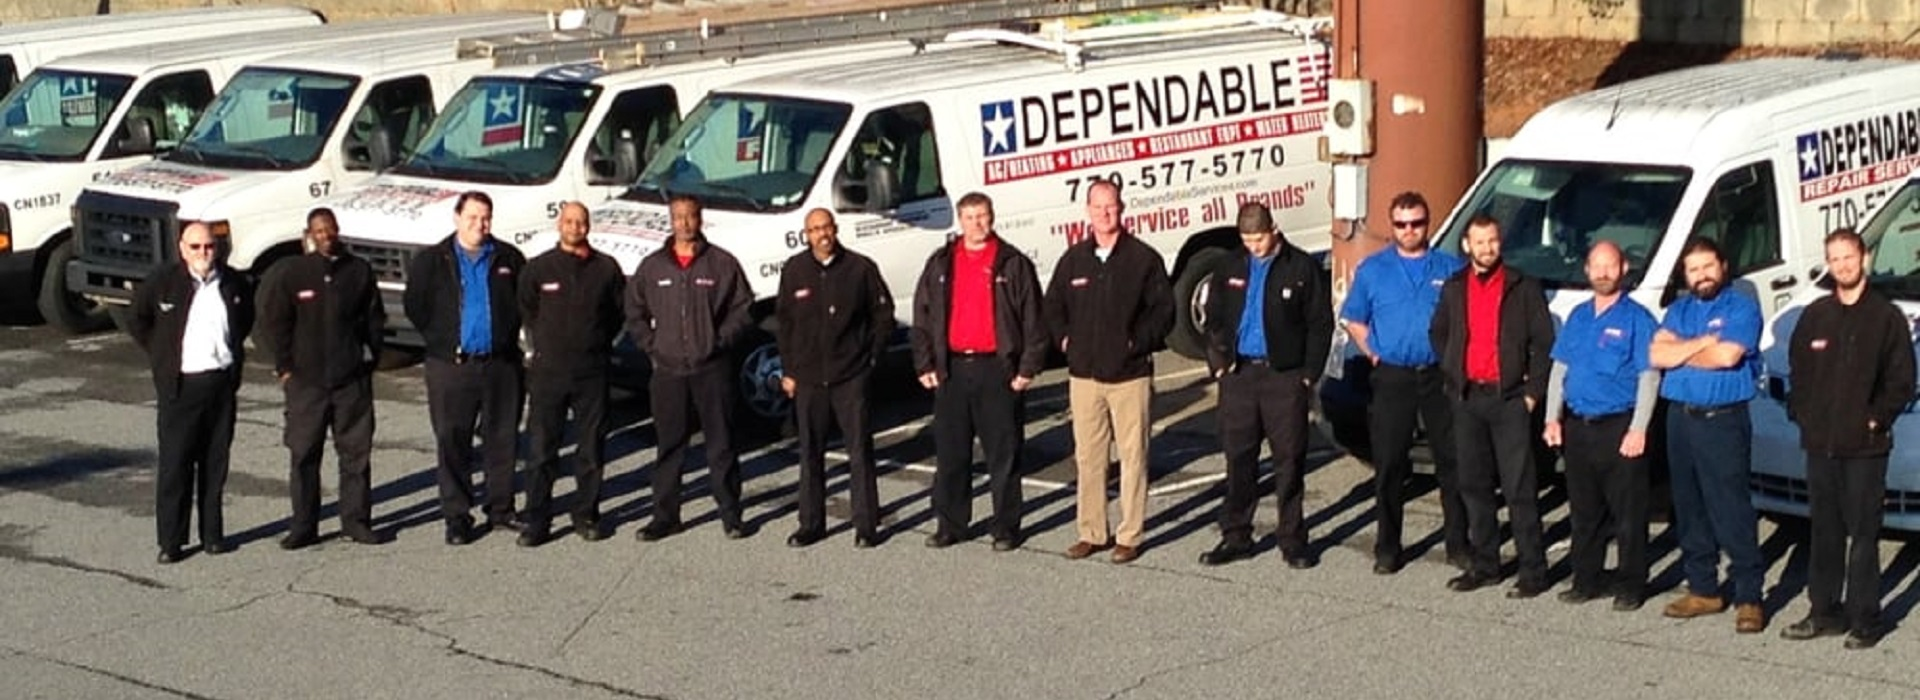 Dependable Arrpliance Repair Atlanta Staff